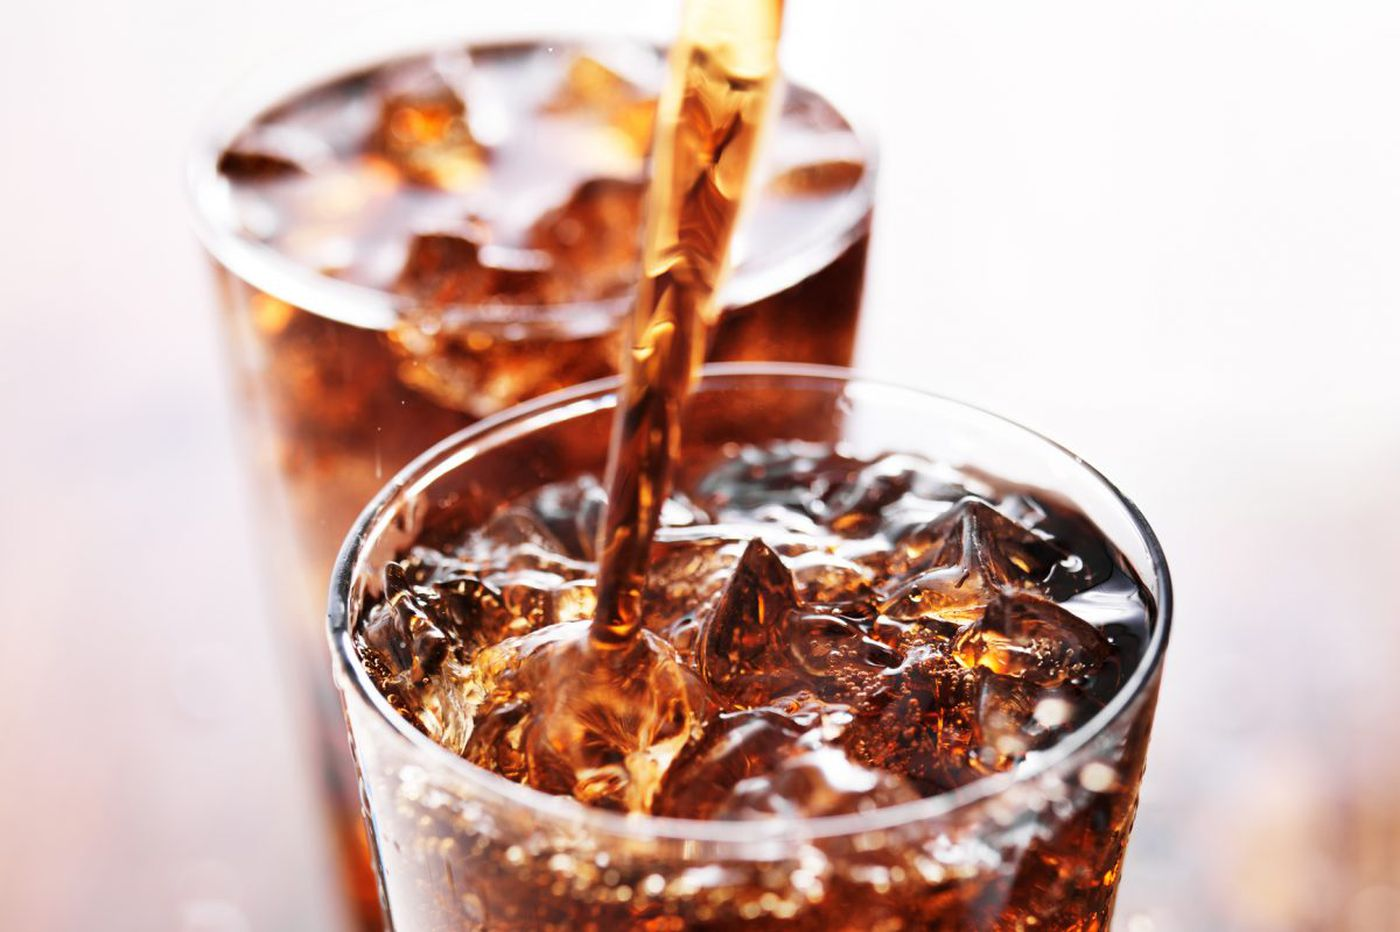 This cardiologist wants his family to cut back on diet soda. Should yours, too?